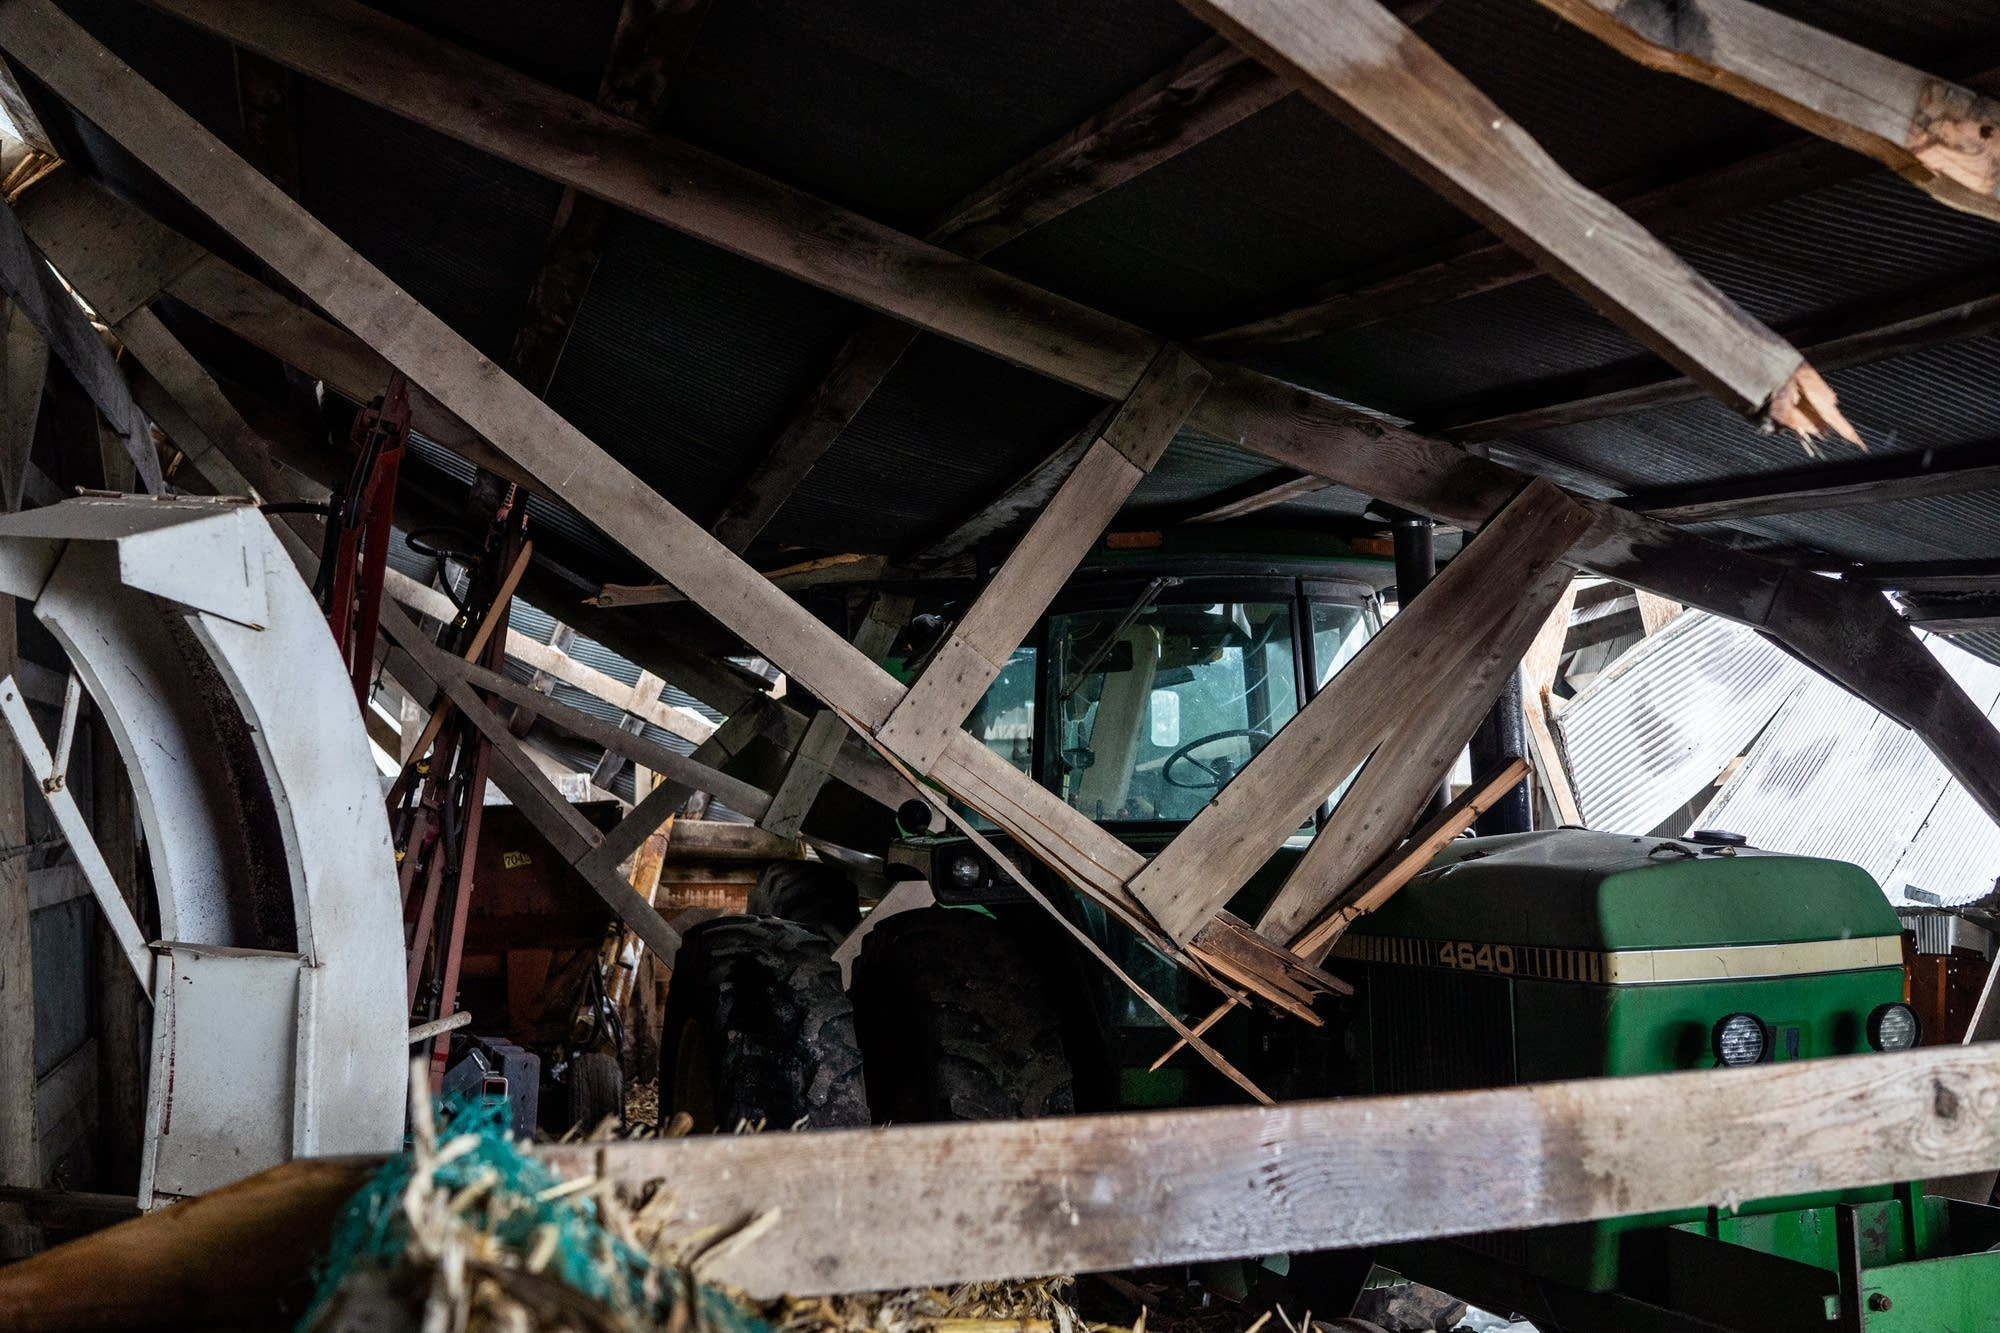 Totaled tractors are stuck in a collapsed machinery shed